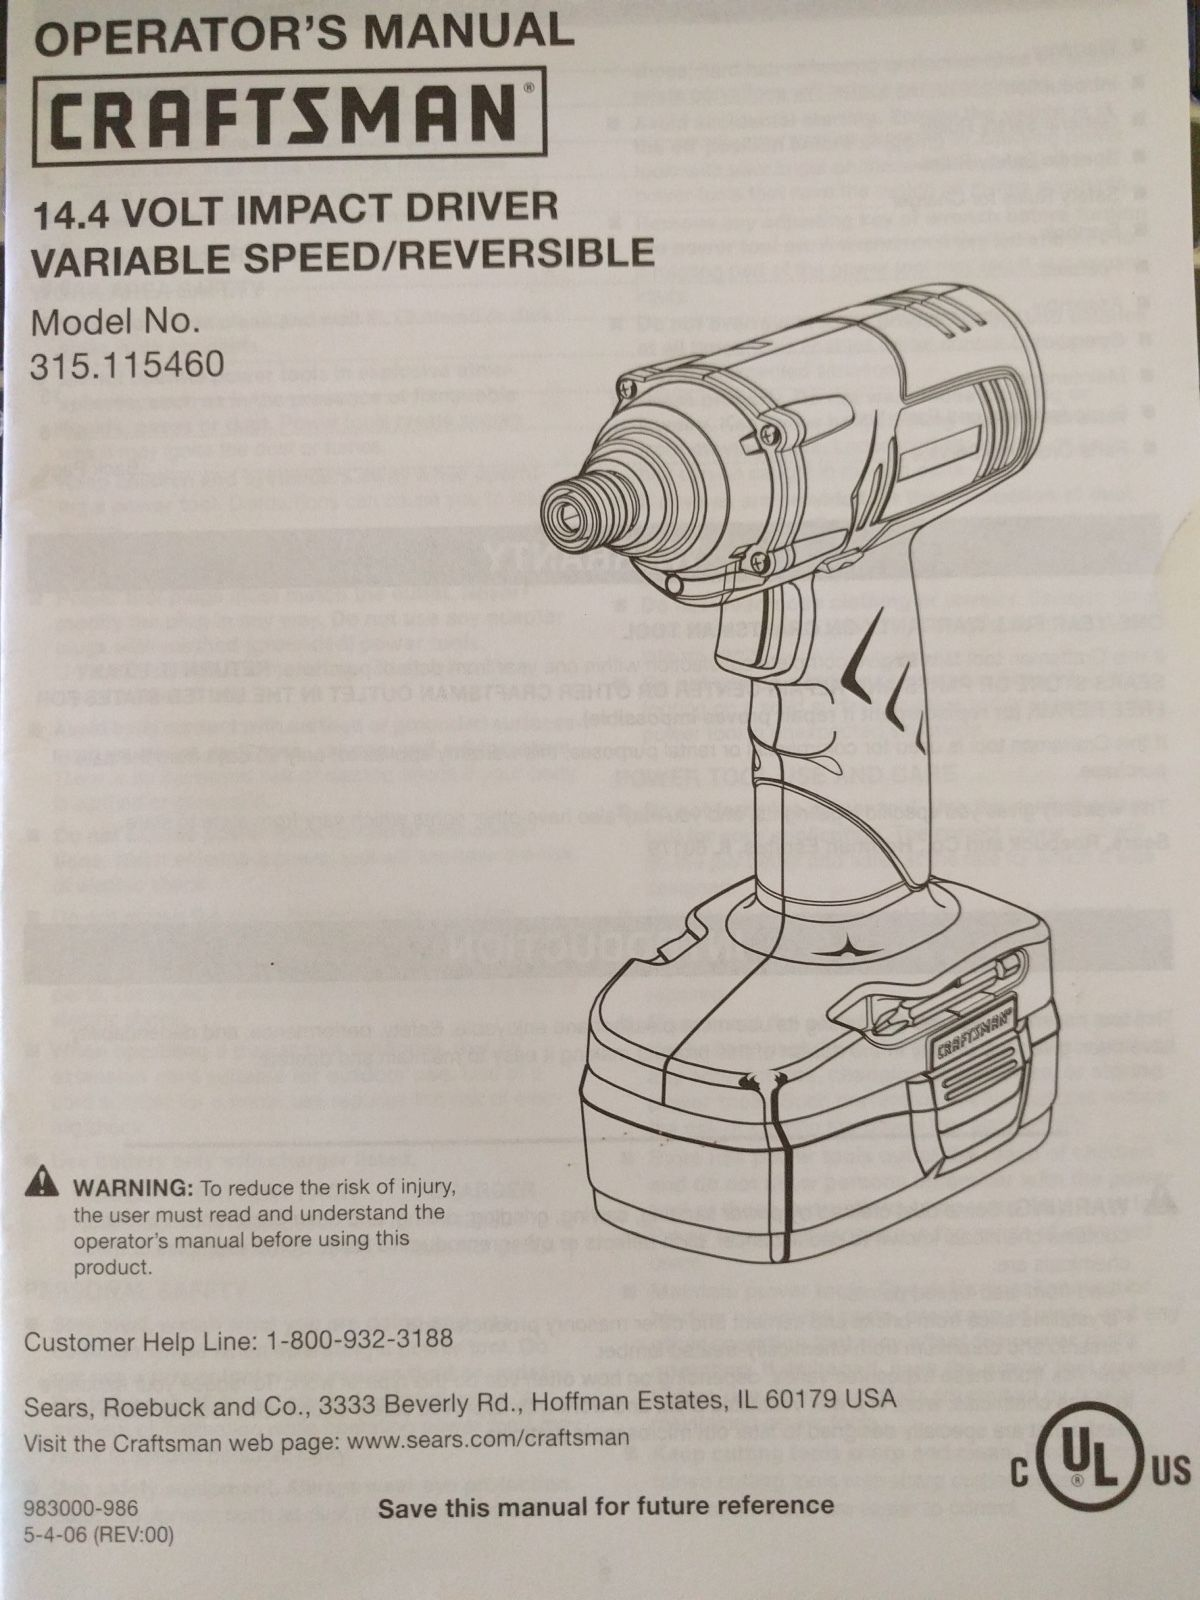 Primary image for SEARS CRAFTSMAN Operator's Manual 14.4 Volt Impact Driver 315.115460 Mint